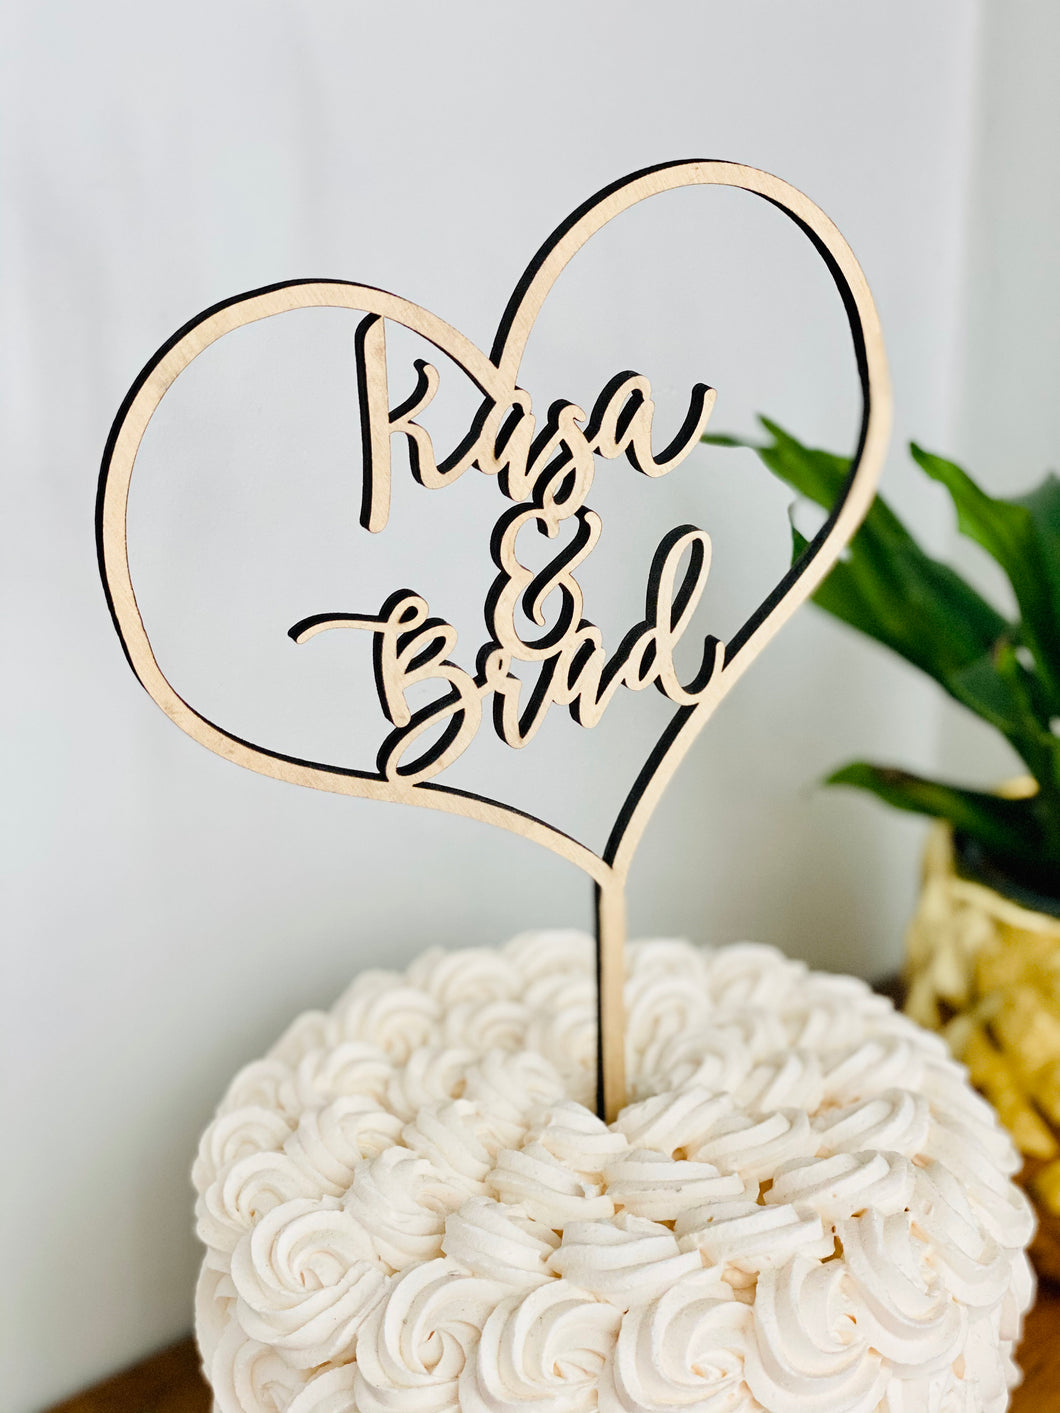 Personalized Heart Name Cake Topper, 6